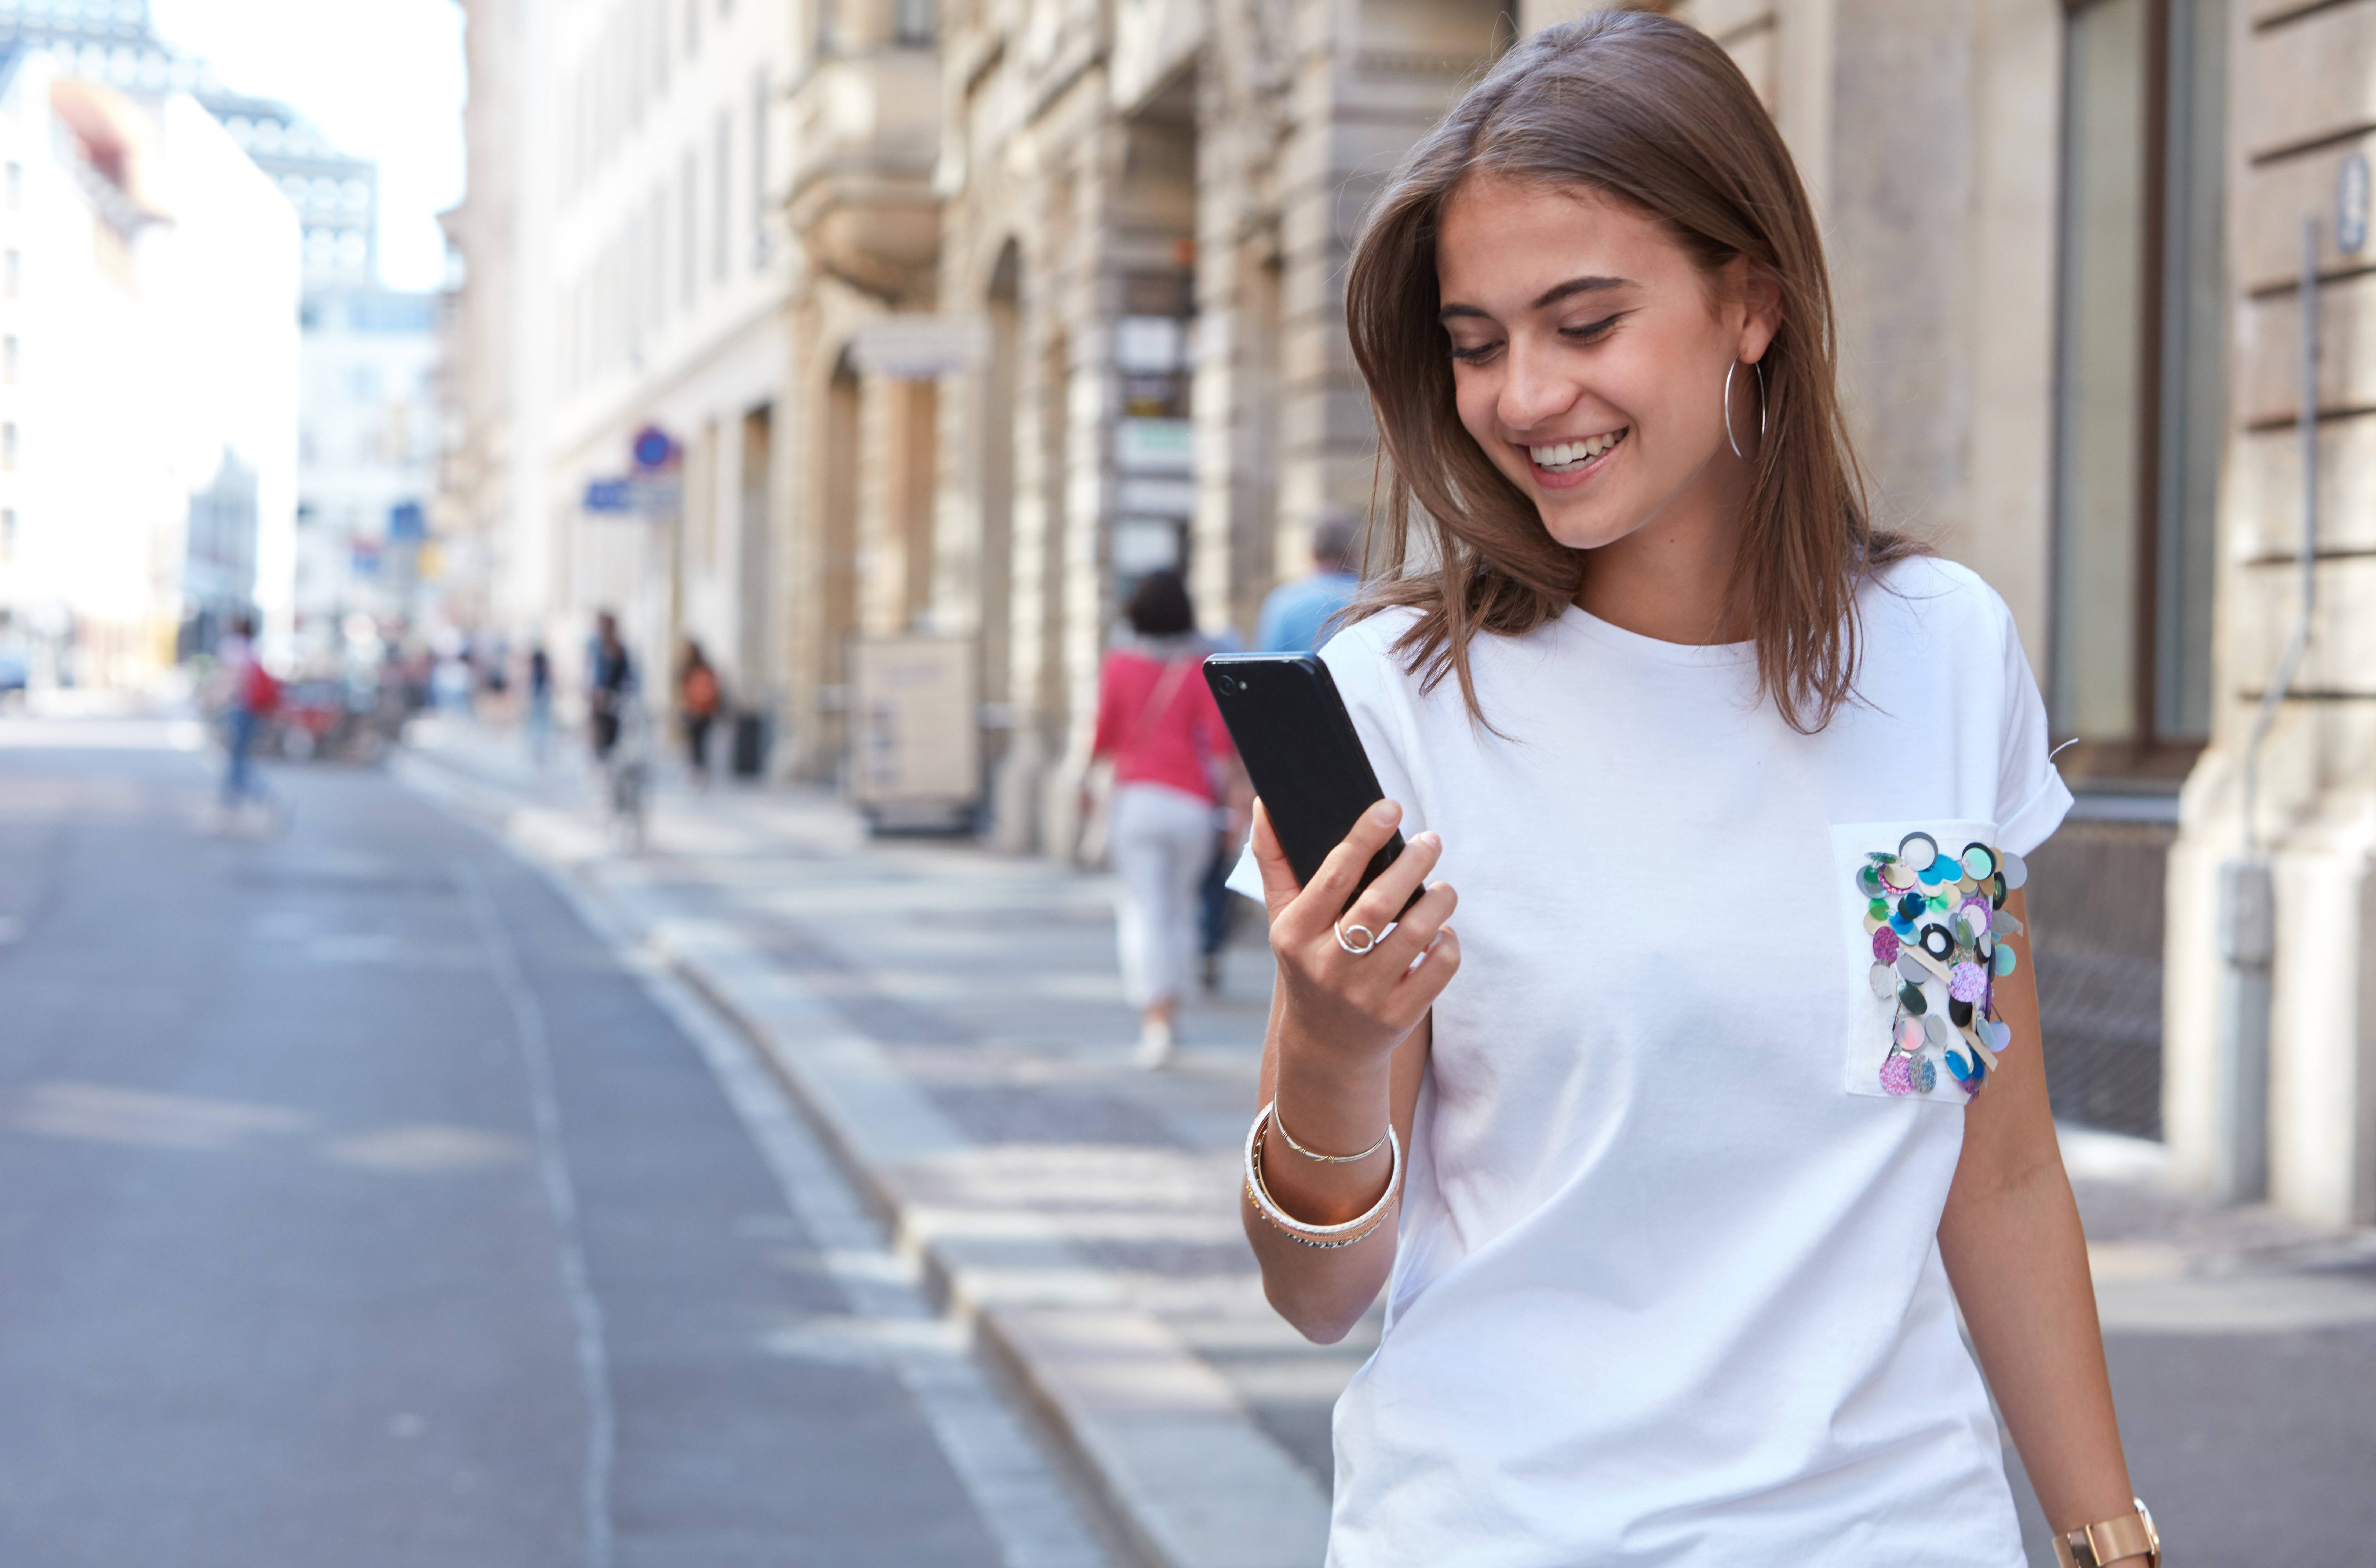 A woman walking down the street while looking at the LG G6 in her hand